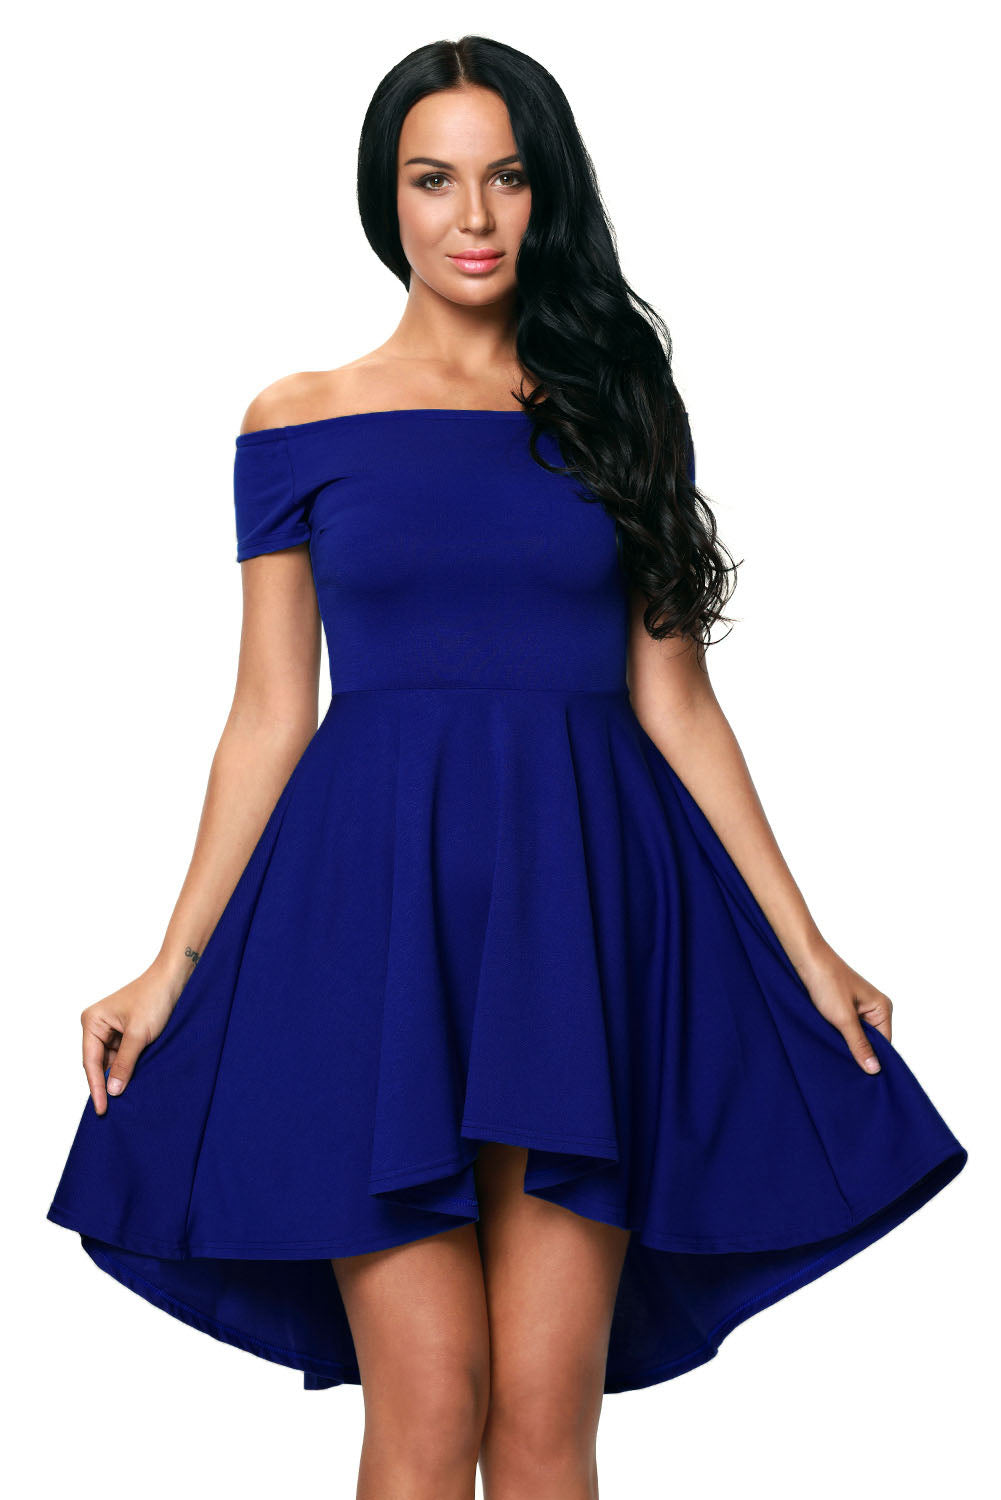 Blue All The Rage Skater Dress Skater Dresses Discount Designer Fashion Clothes Shoes Bags Women Men Kids Children Black Owned Business